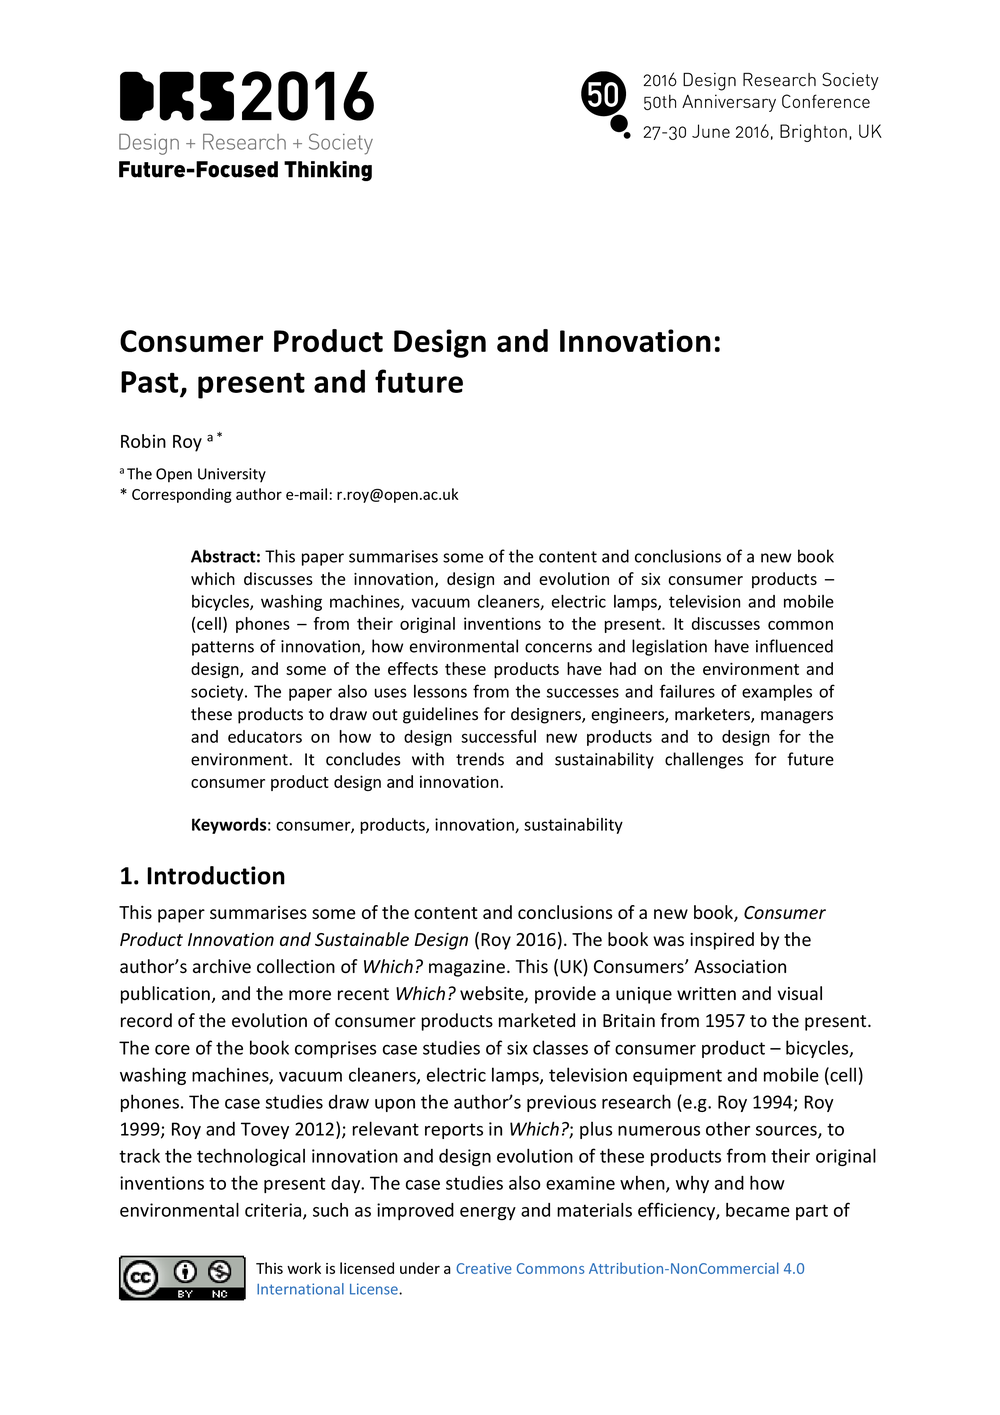 Consumer Product Design and Innovation: Past, present and future